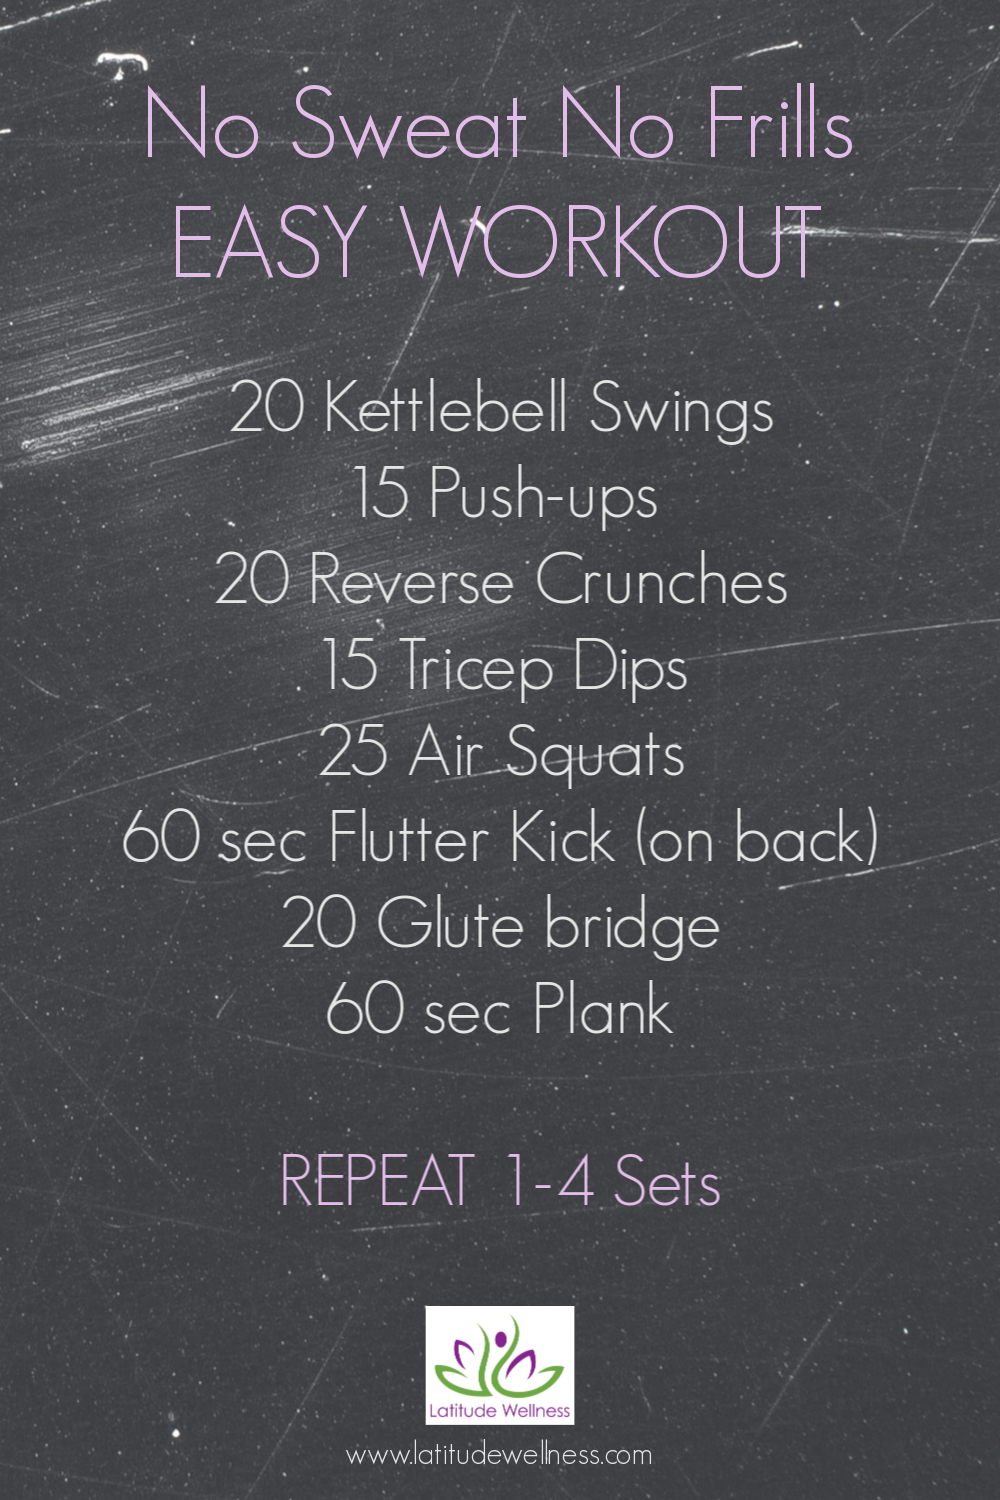 No Sweat No Frills Easy Workout